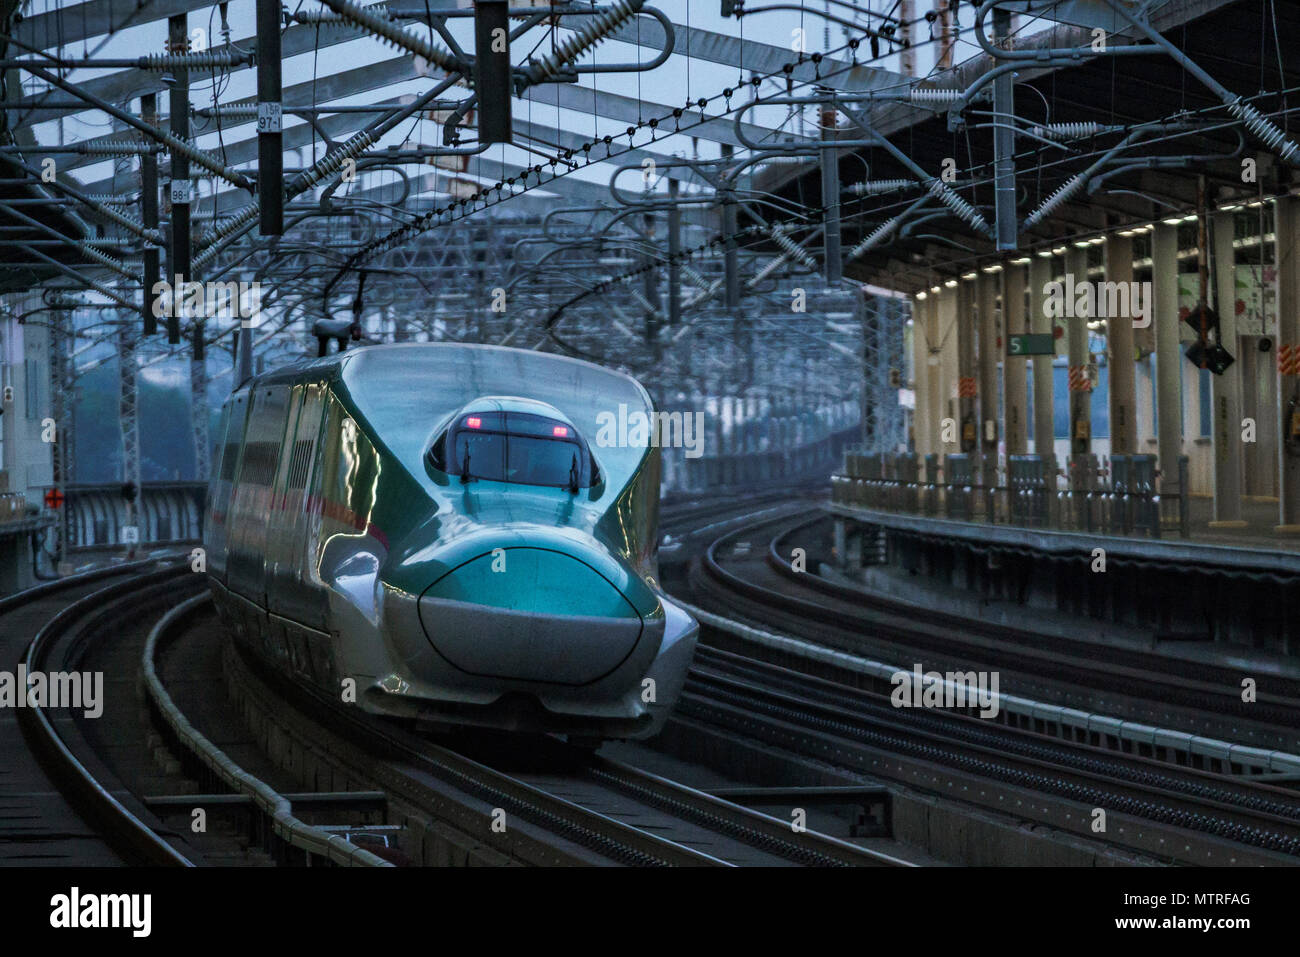 Tohoku Shinkansen E5, série Tsumkwe, Nasushiobara City, Préfecture Tochigi, Japon Photo Stock